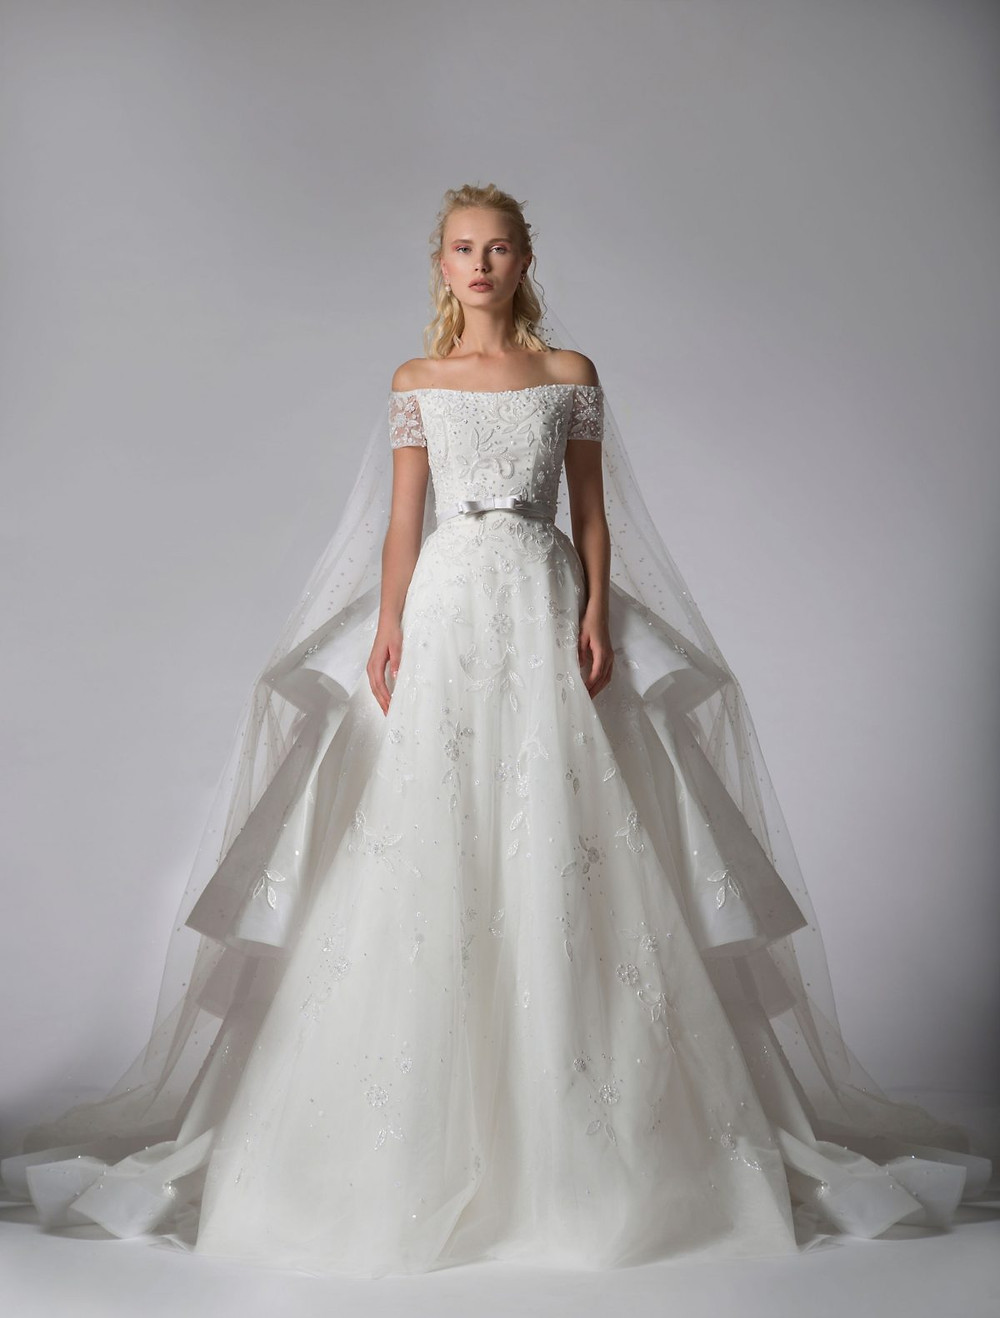 Weddinspired | 50+ Detachable Skirt Wedding Dresses | Georges Hobeika from the Bridal 19 -20 collection